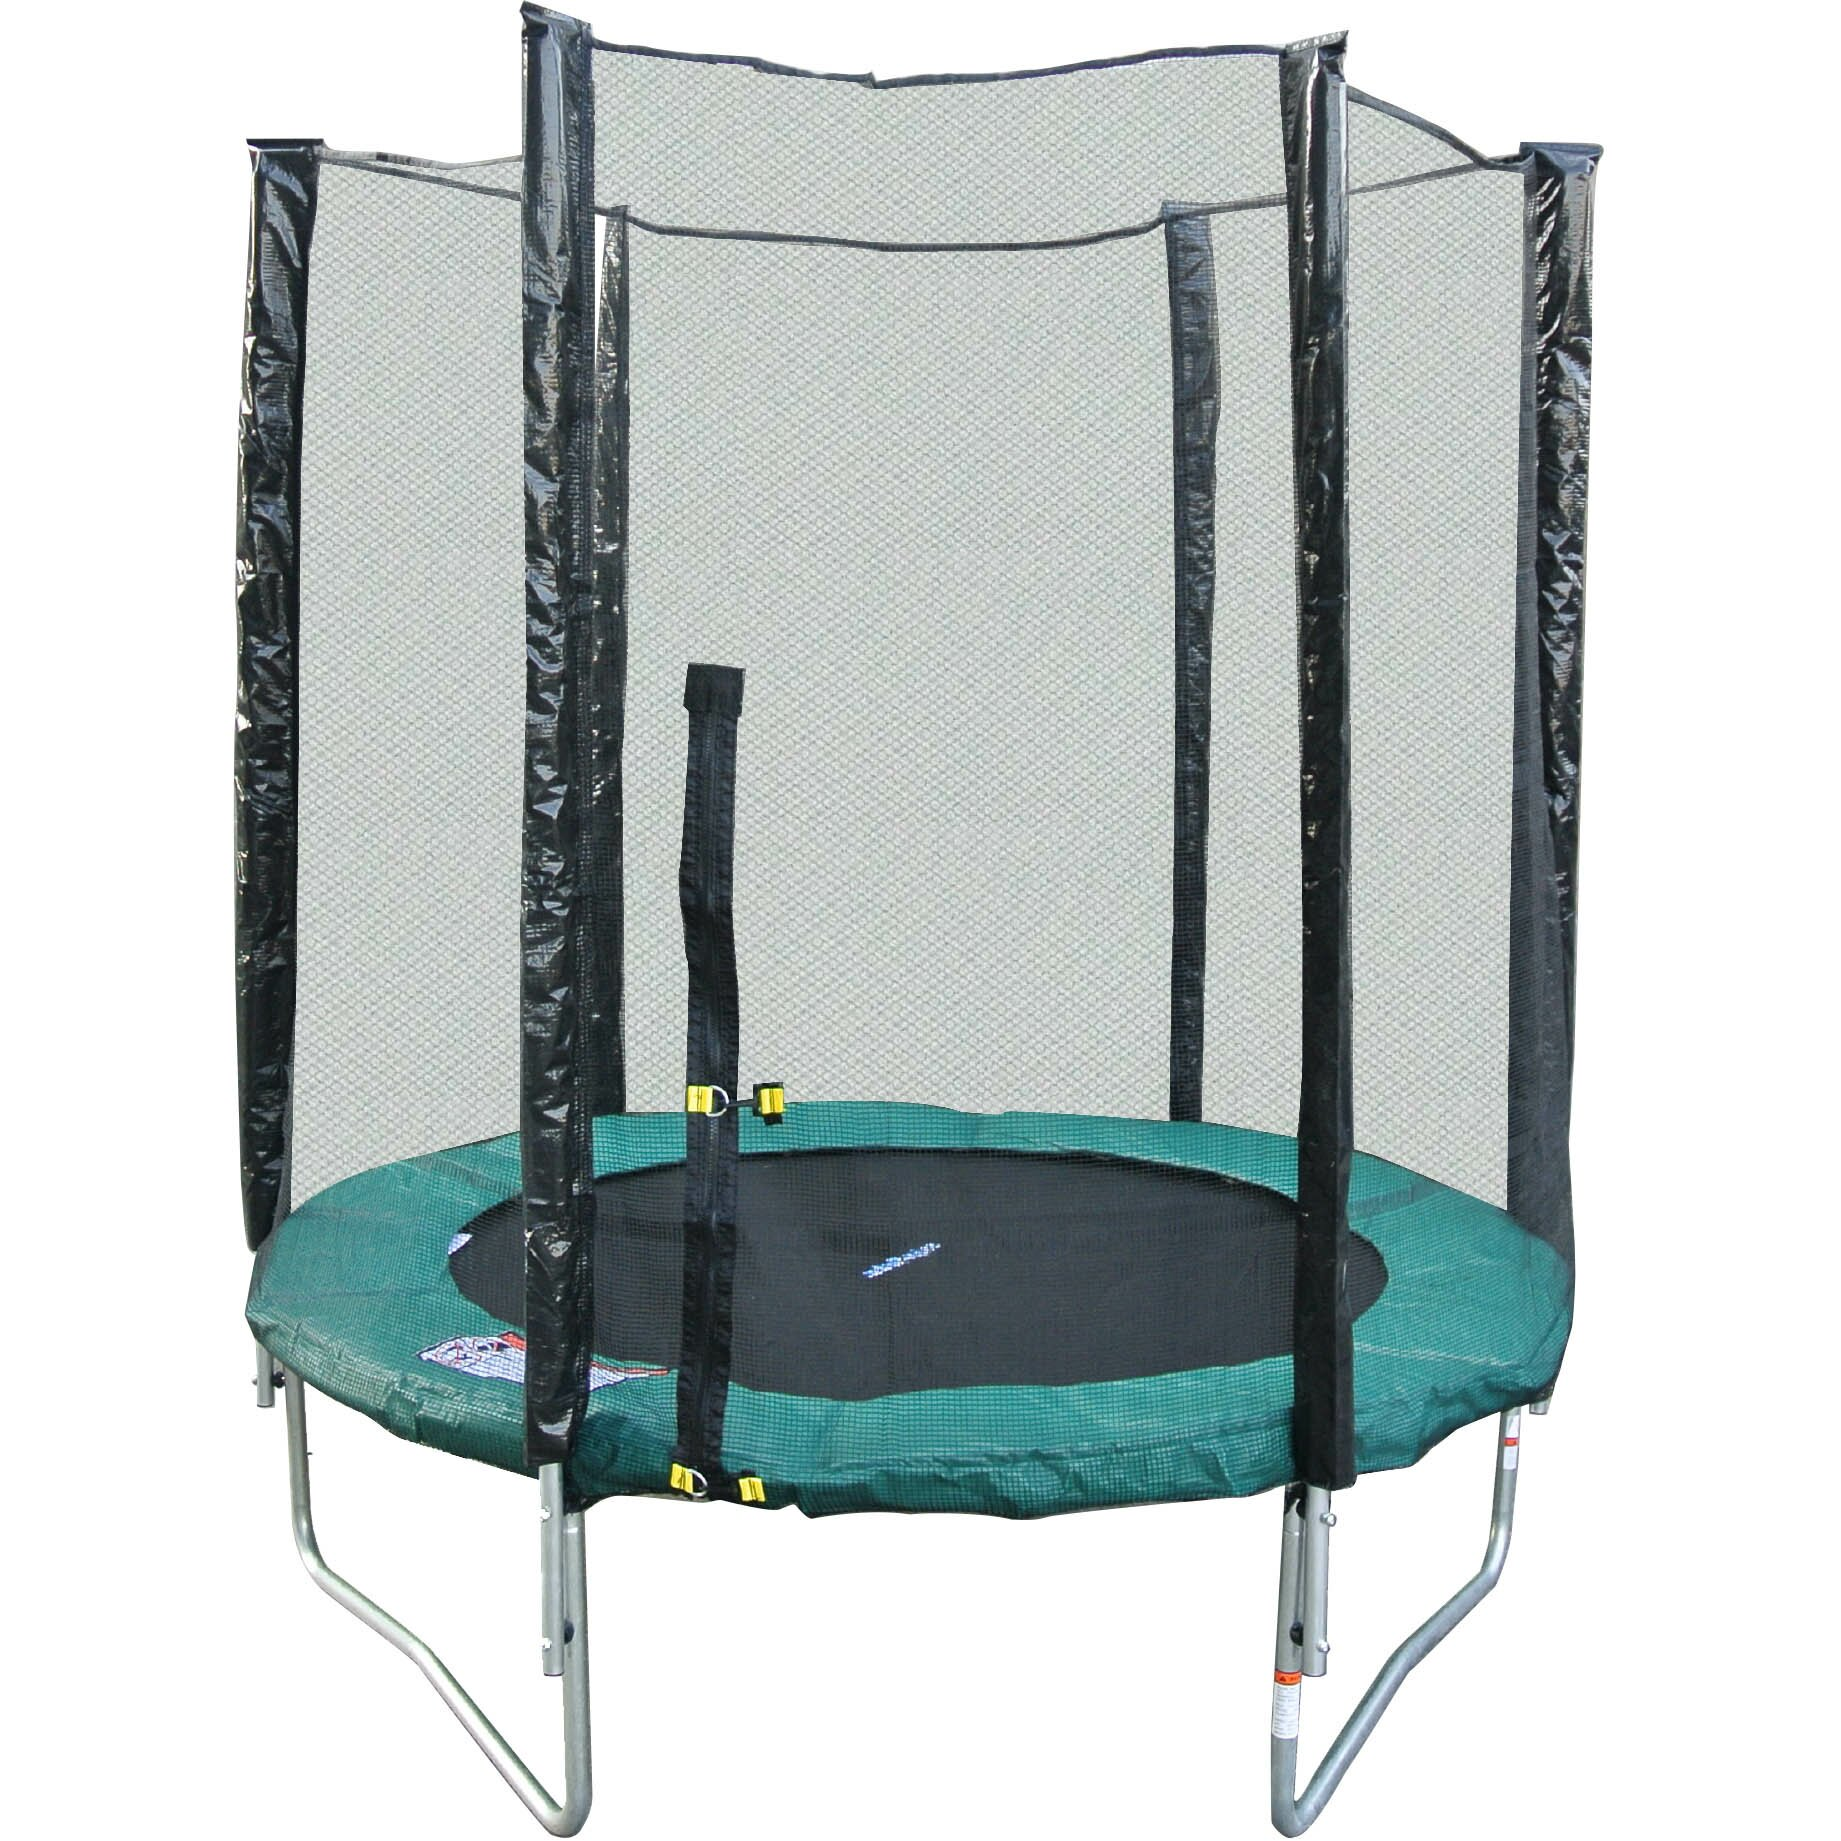 Super Jumper 6' Trampoline Combo With Enclosure & Reviews